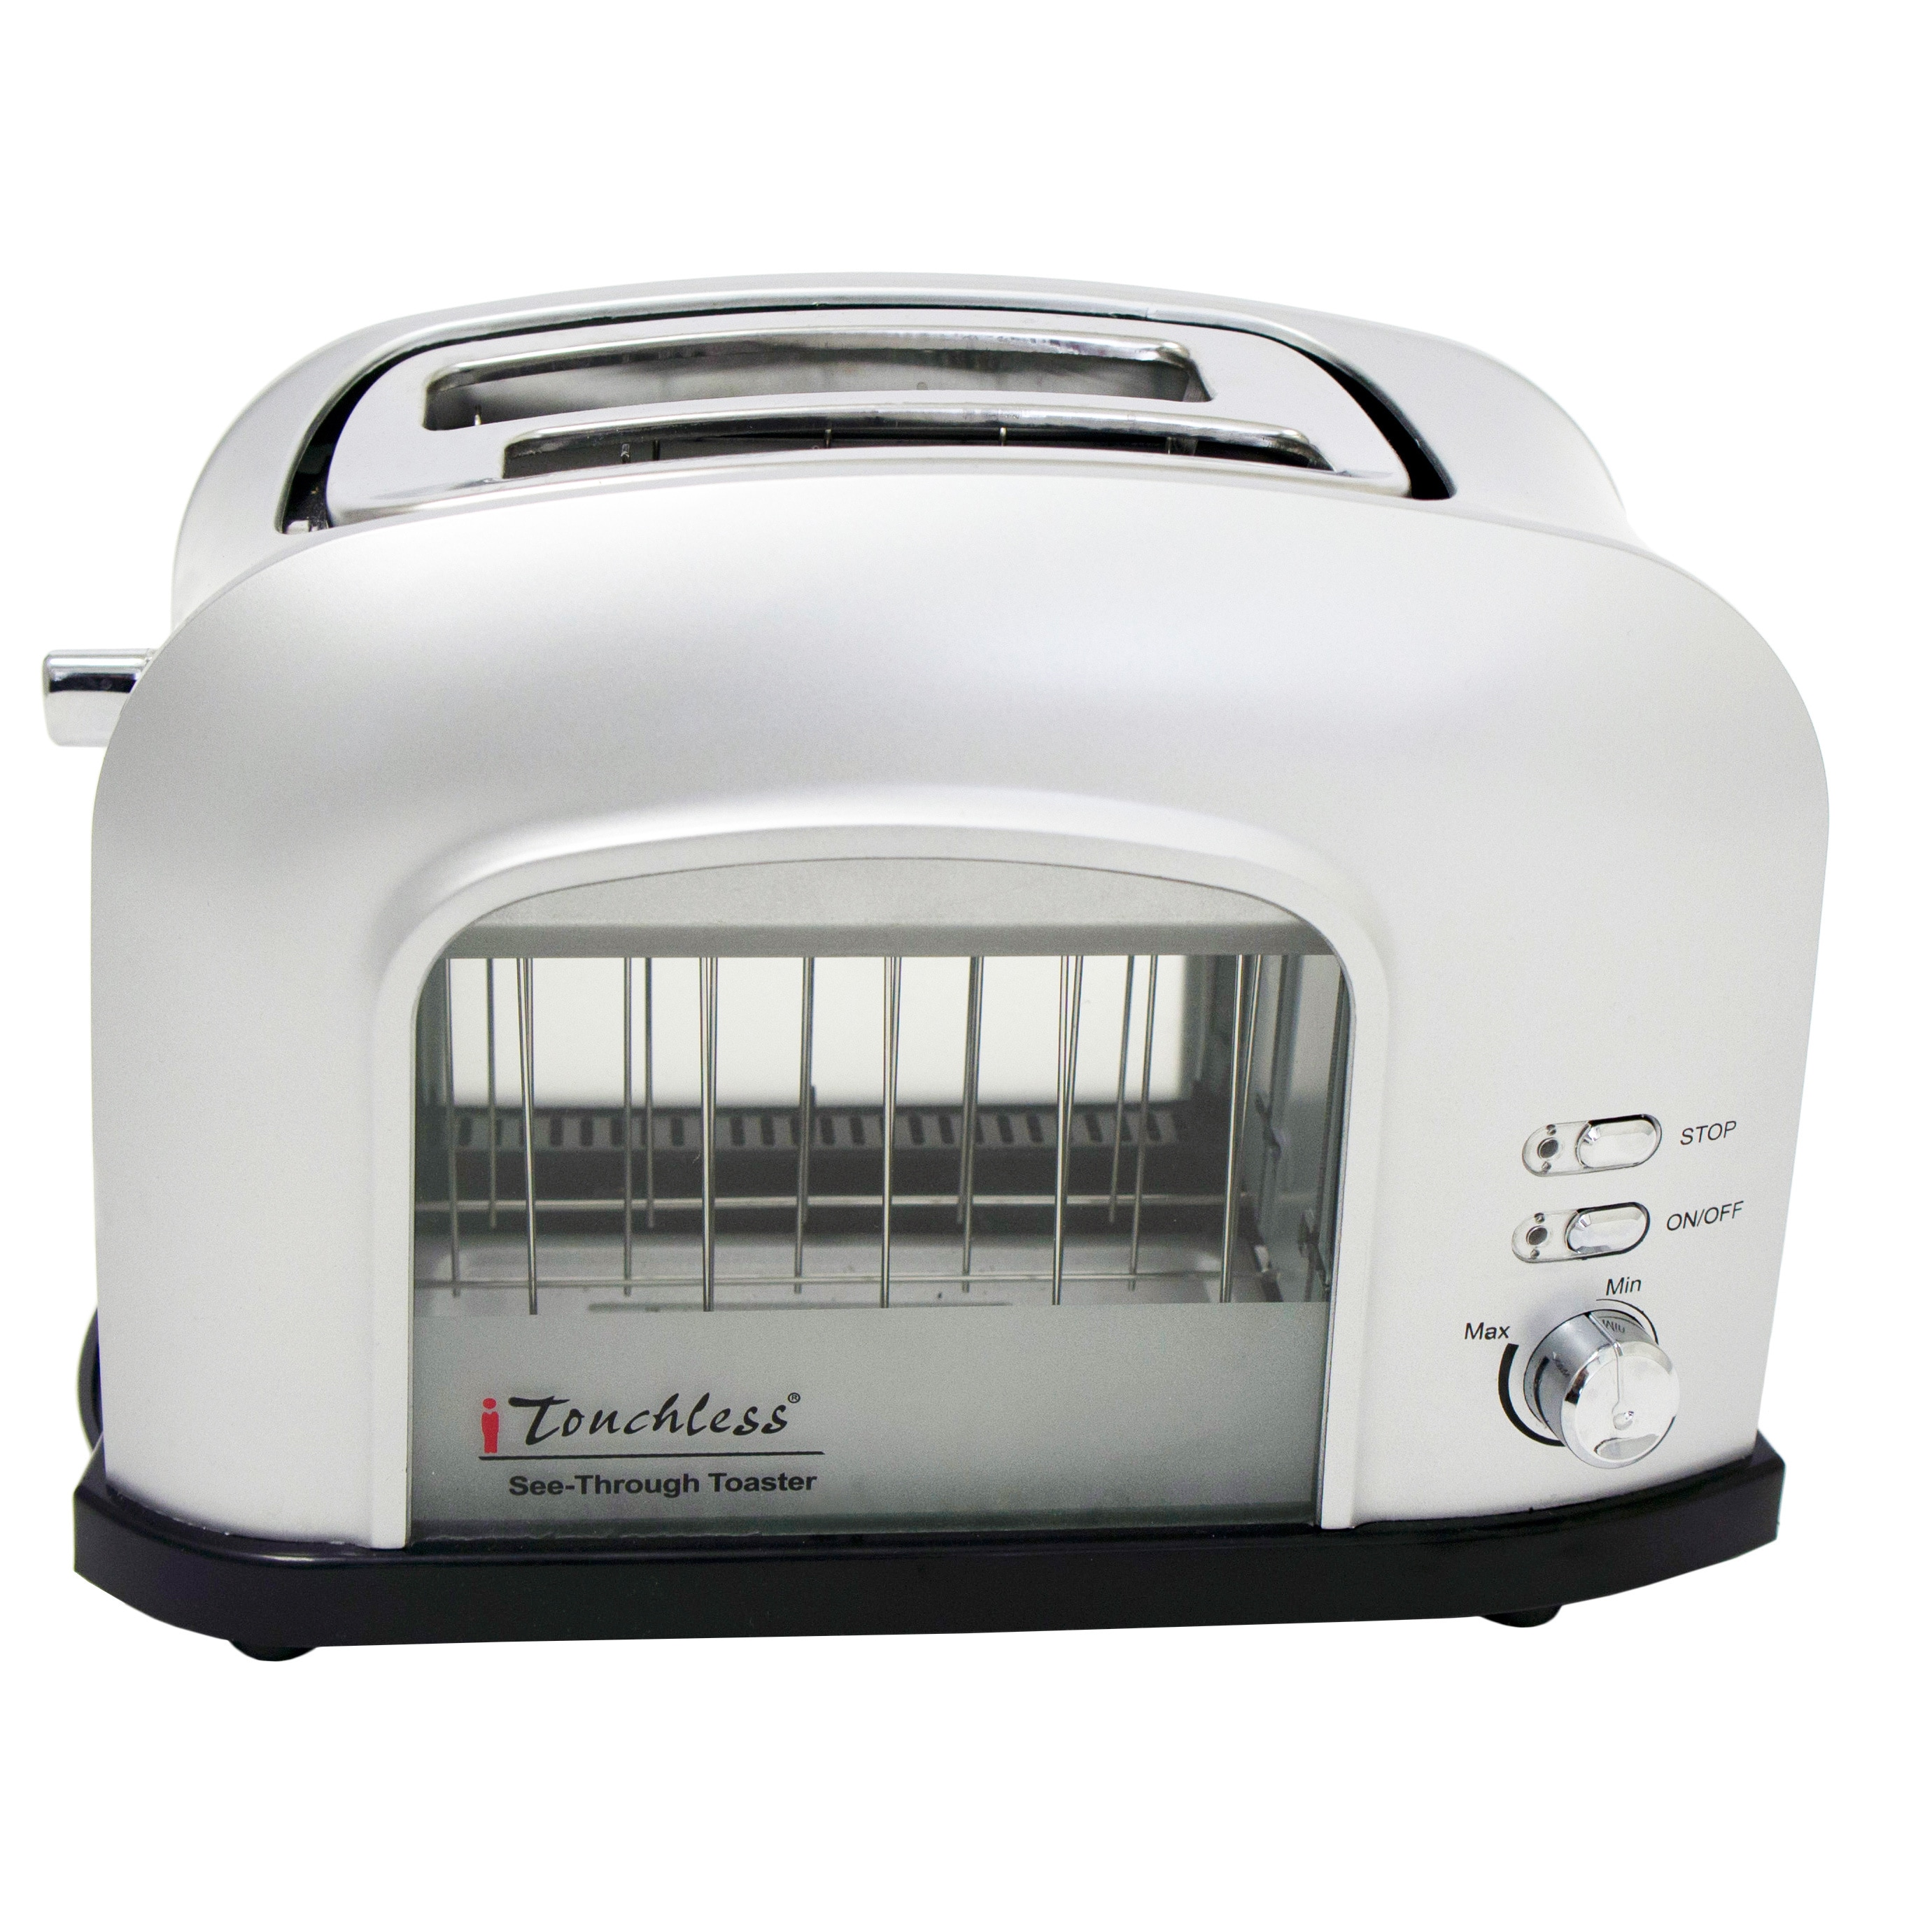 aed en vat all ae toaster moha black details in include sandwich prices model